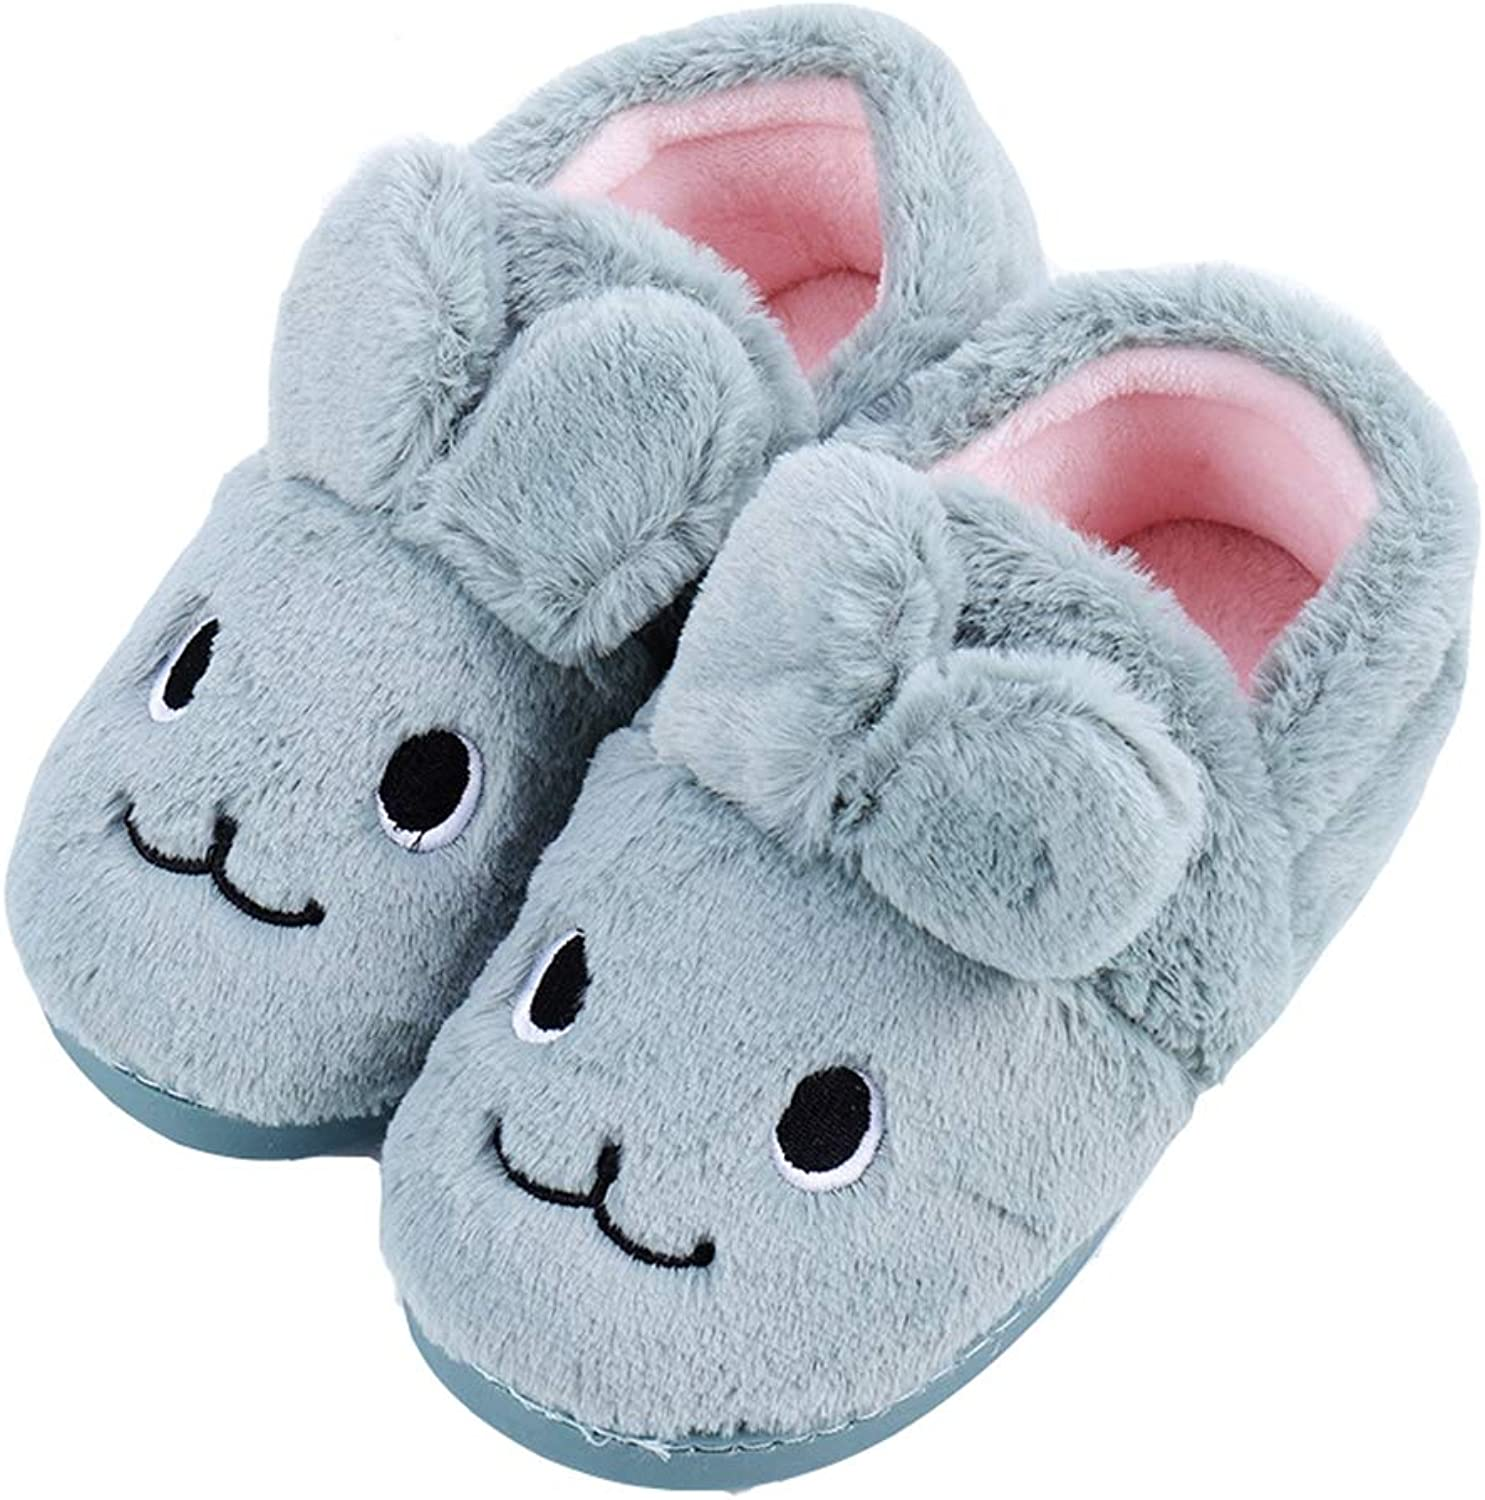 T-JULY Womens Ladies Fuzzy Pink Bunny Rabbit Ears Soft Fluffy Home Slippers Fur Plush Warm Winter Indoor Slippers